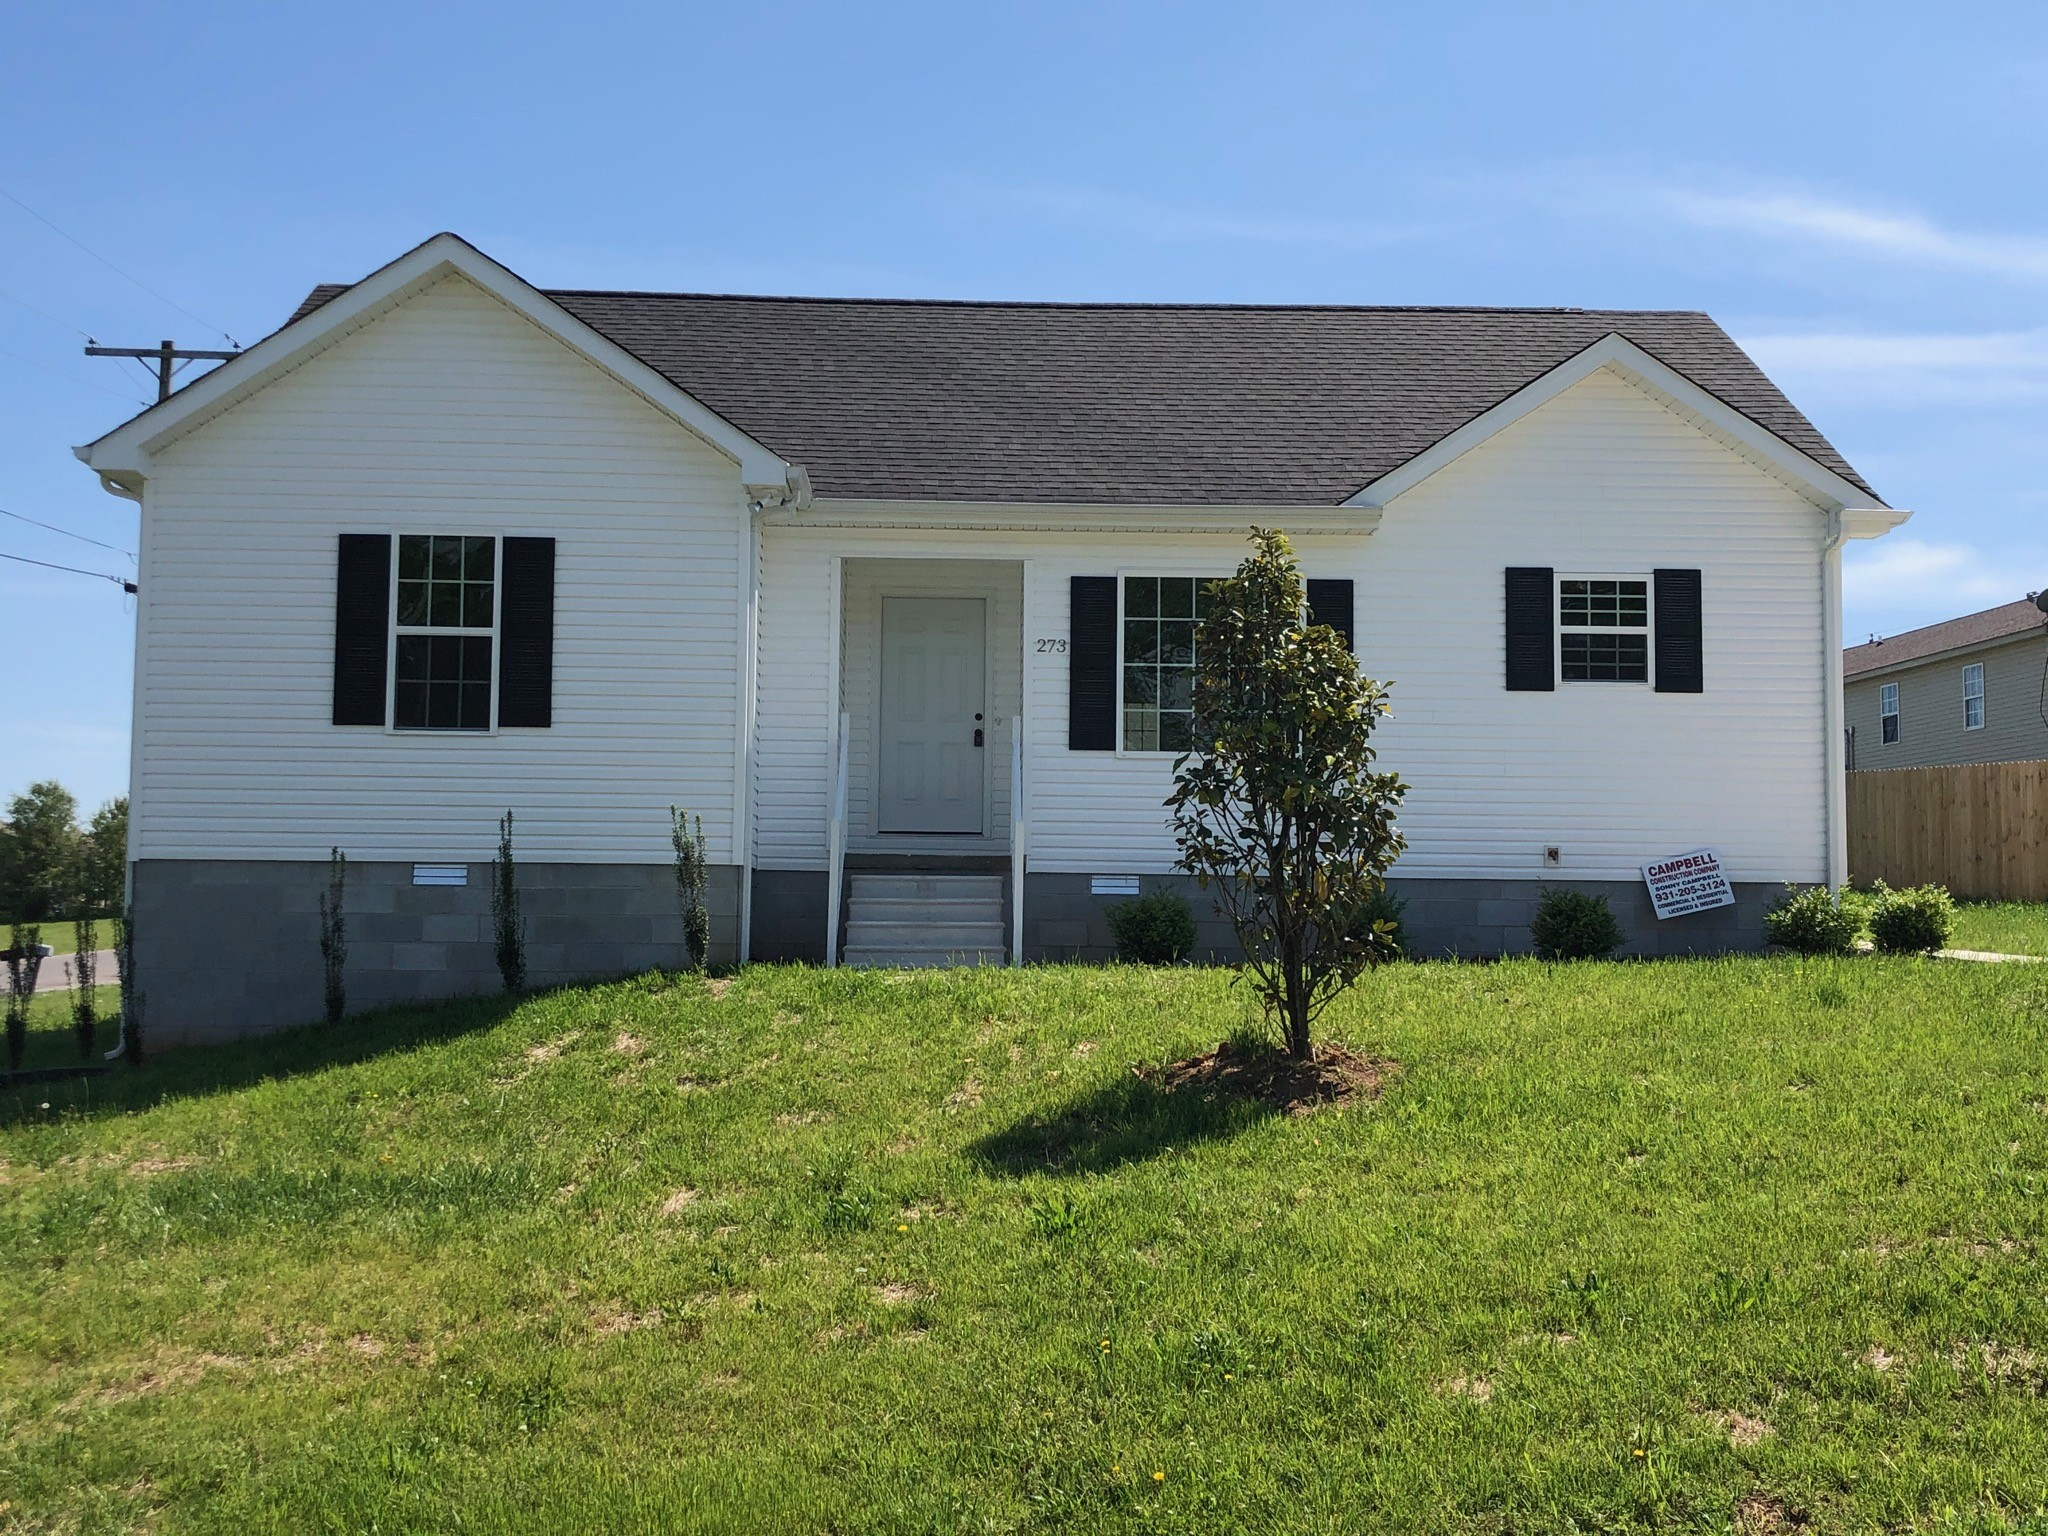 273 Modena Rd, Decherd, TN 37324 - Decherd, TN real estate listing